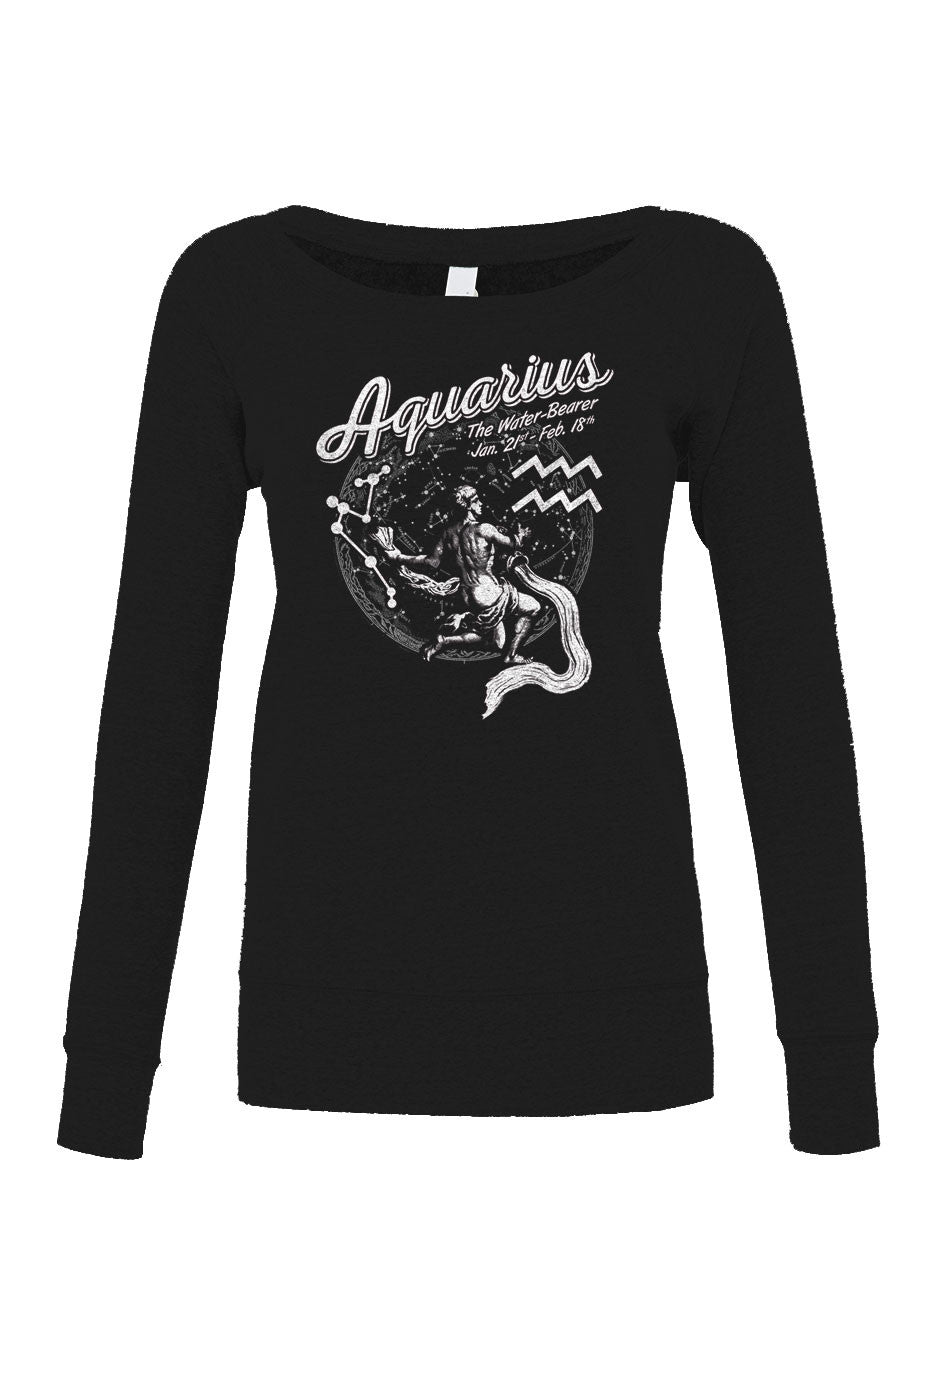 Women's Vintage Aquarius Scoop Neck Fleece